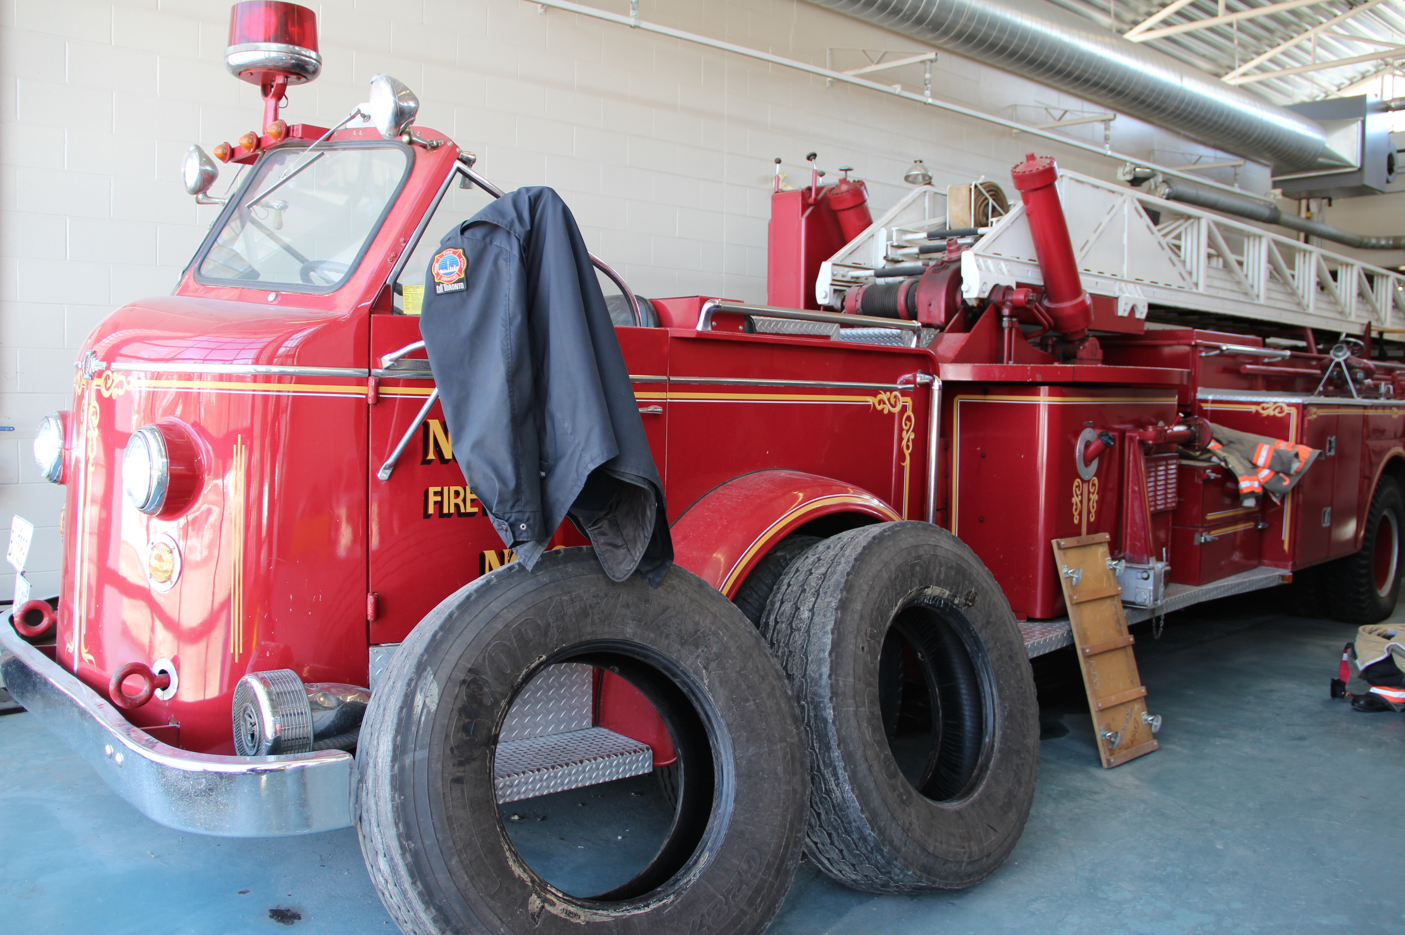 Community Helpers: A Visit With a Local Firefighter - old fire truck